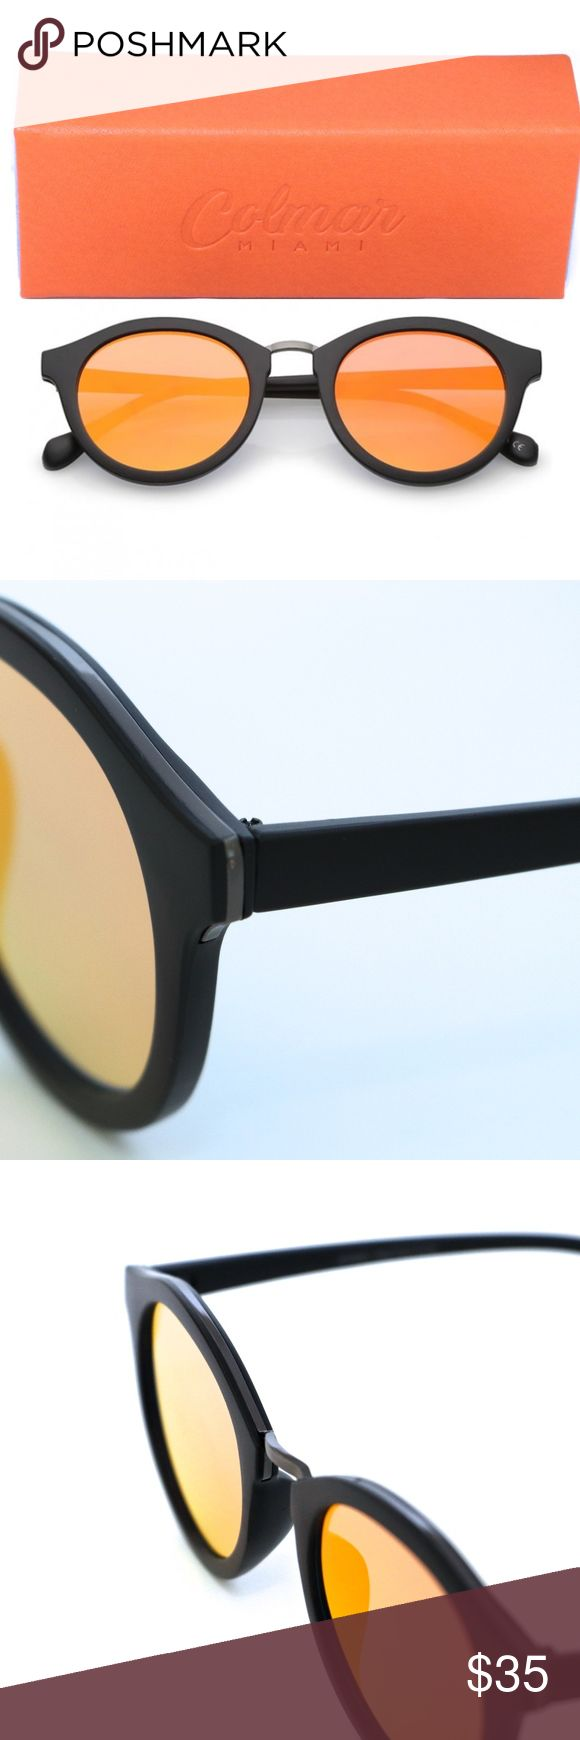 Charming Sunglasses Looking cute it is not a problem if you wear these charming shades, they come in black frames with black details on top and features orange mirrored lenses with uv protection, perfect for a beach day or a Sunday brunch.  • 400 UV Protection. • Material: synthetic and metal. • Width: 2.2 inches, 70mm. • Length: 5.9 inches, 149mm. • Lenses Width: 2 inches, 51mm. • Lenses length: 2.2 inches, 47mm.  These Sunglasses comes with a custom leather case with a microfiber cloth…